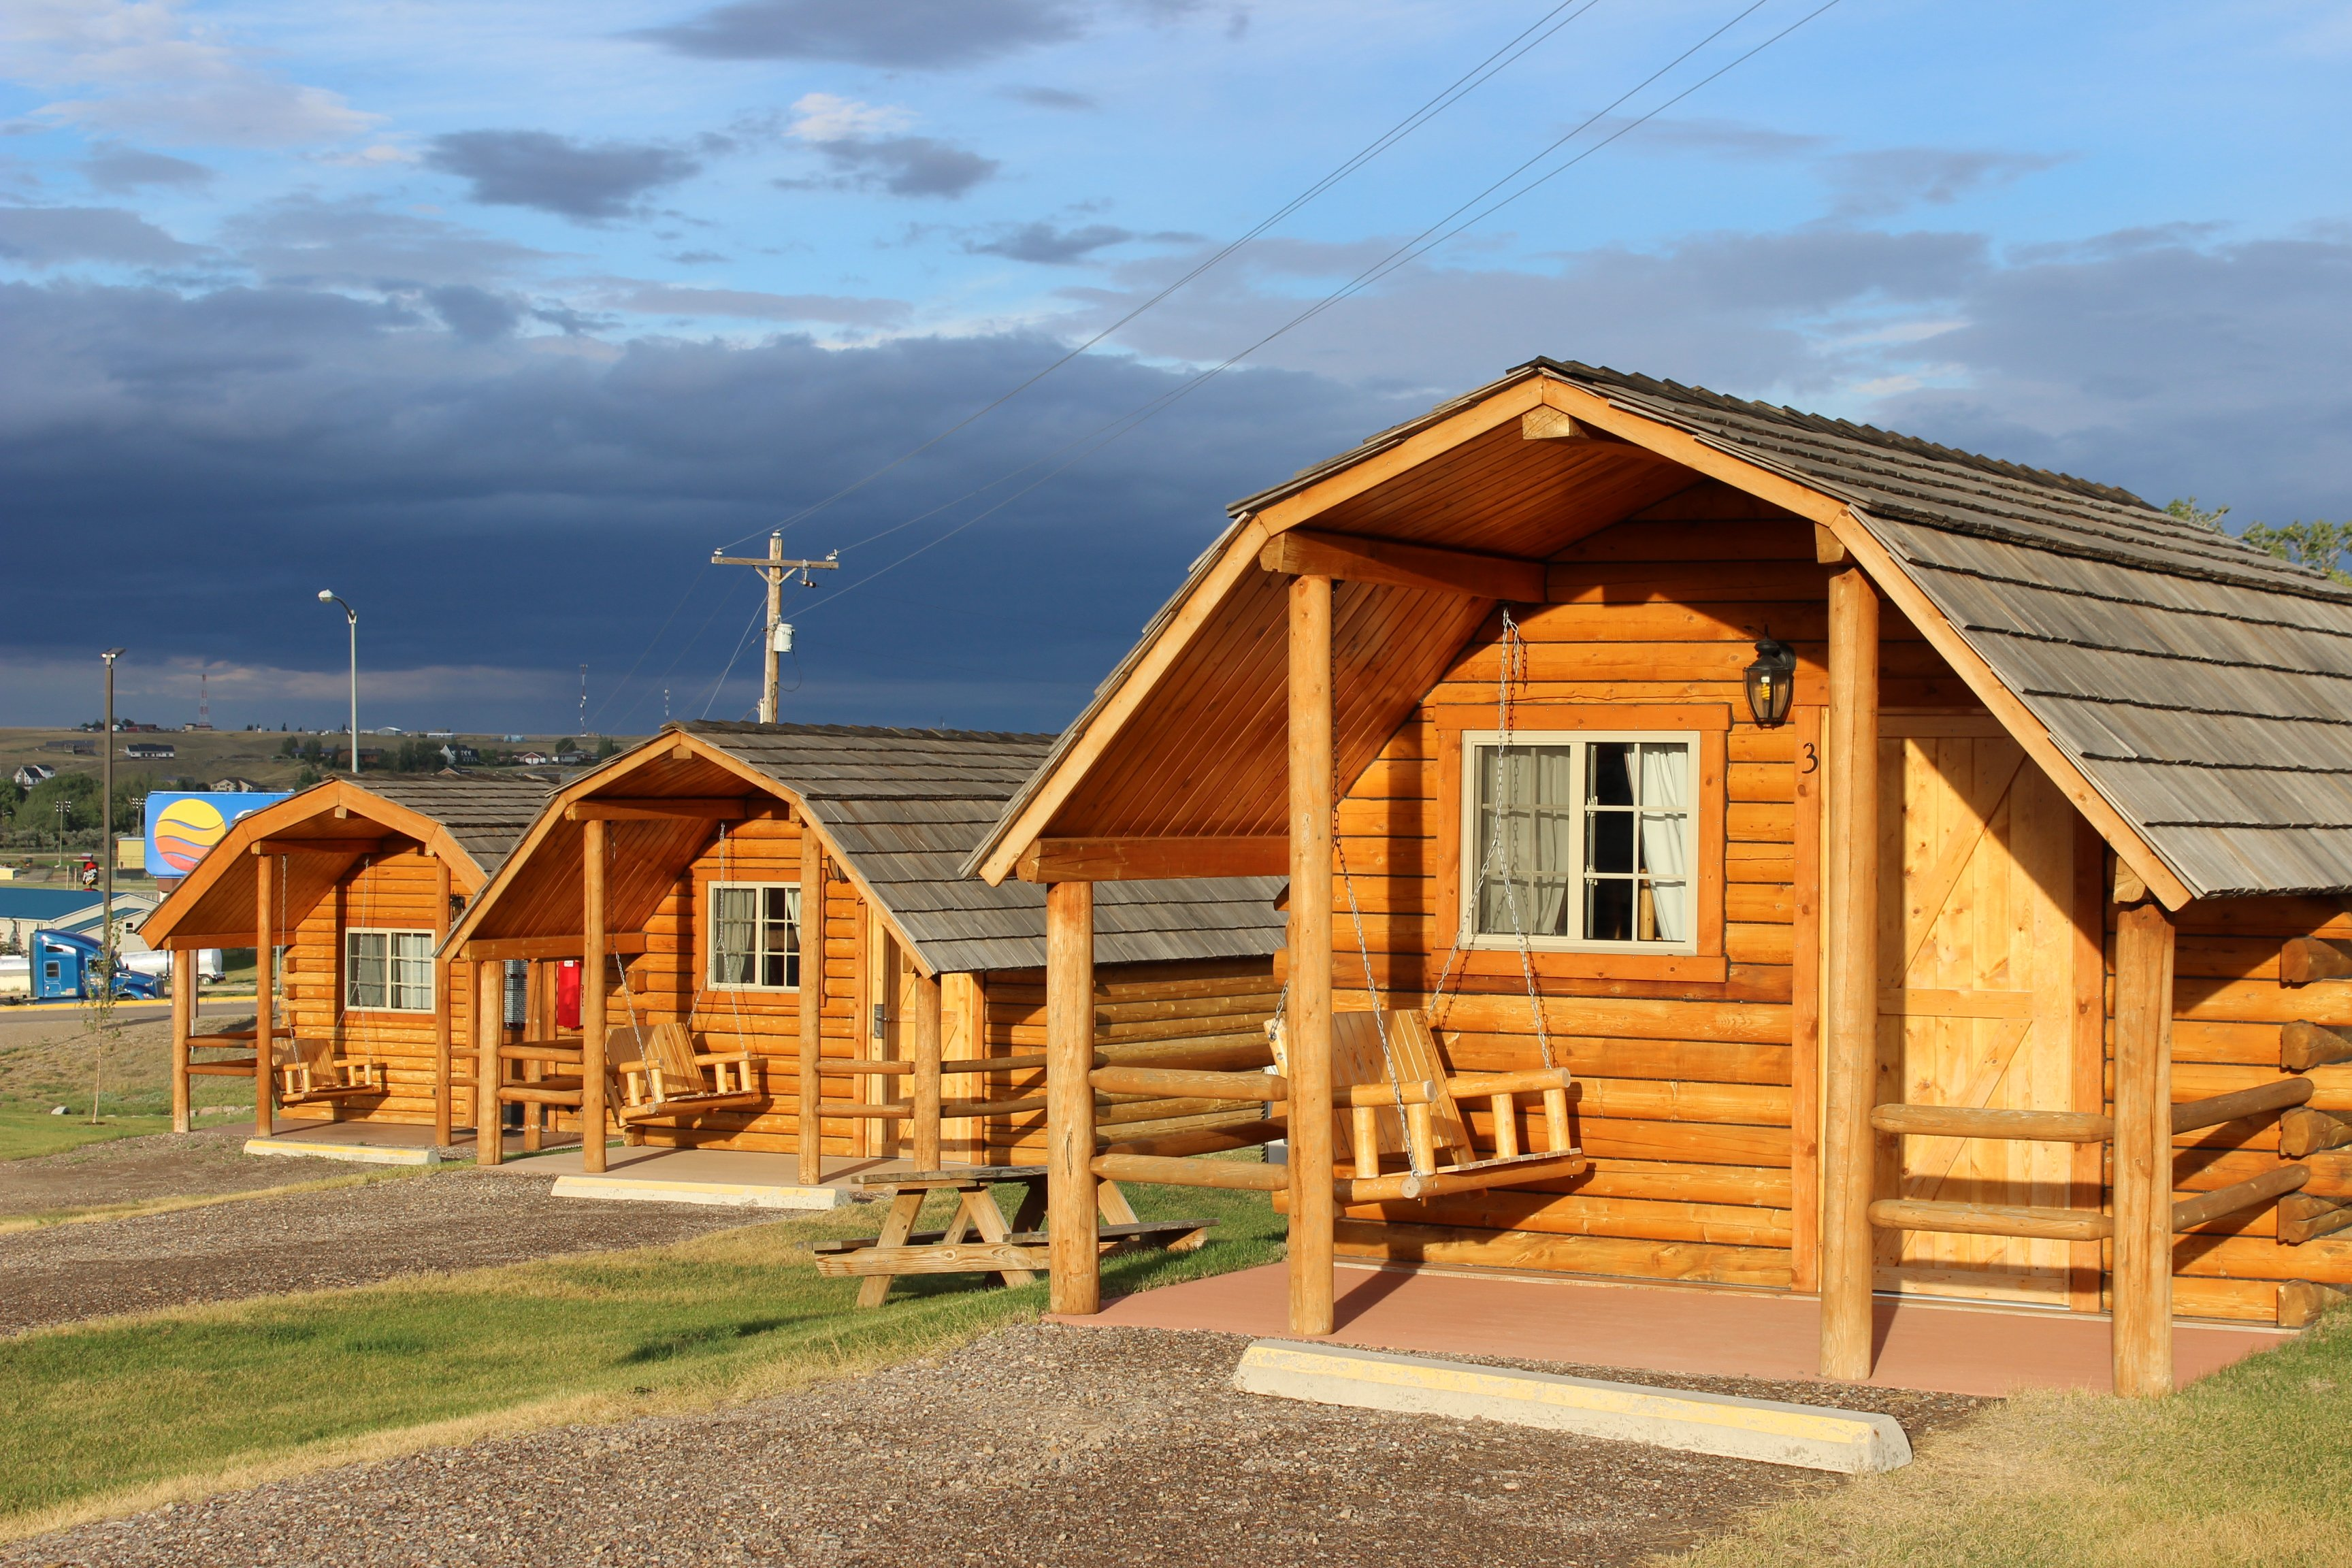 Shelby Mt Rv Park And Resort